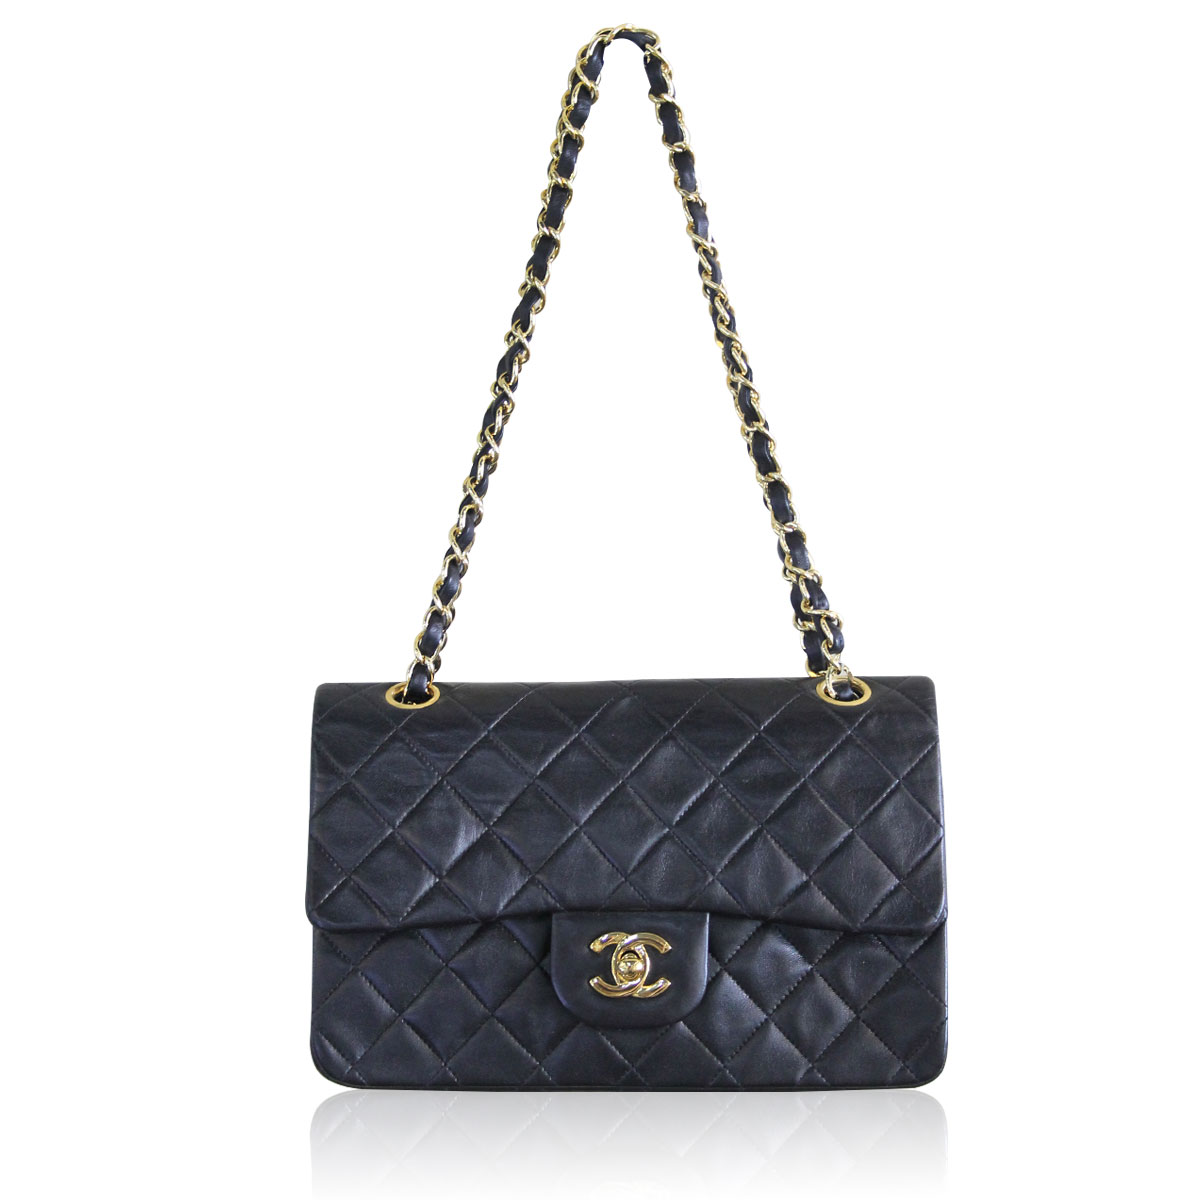 92d0c2c876de Sell Used Chanel Purse | Stanford Center for Opportunity Policy in ...